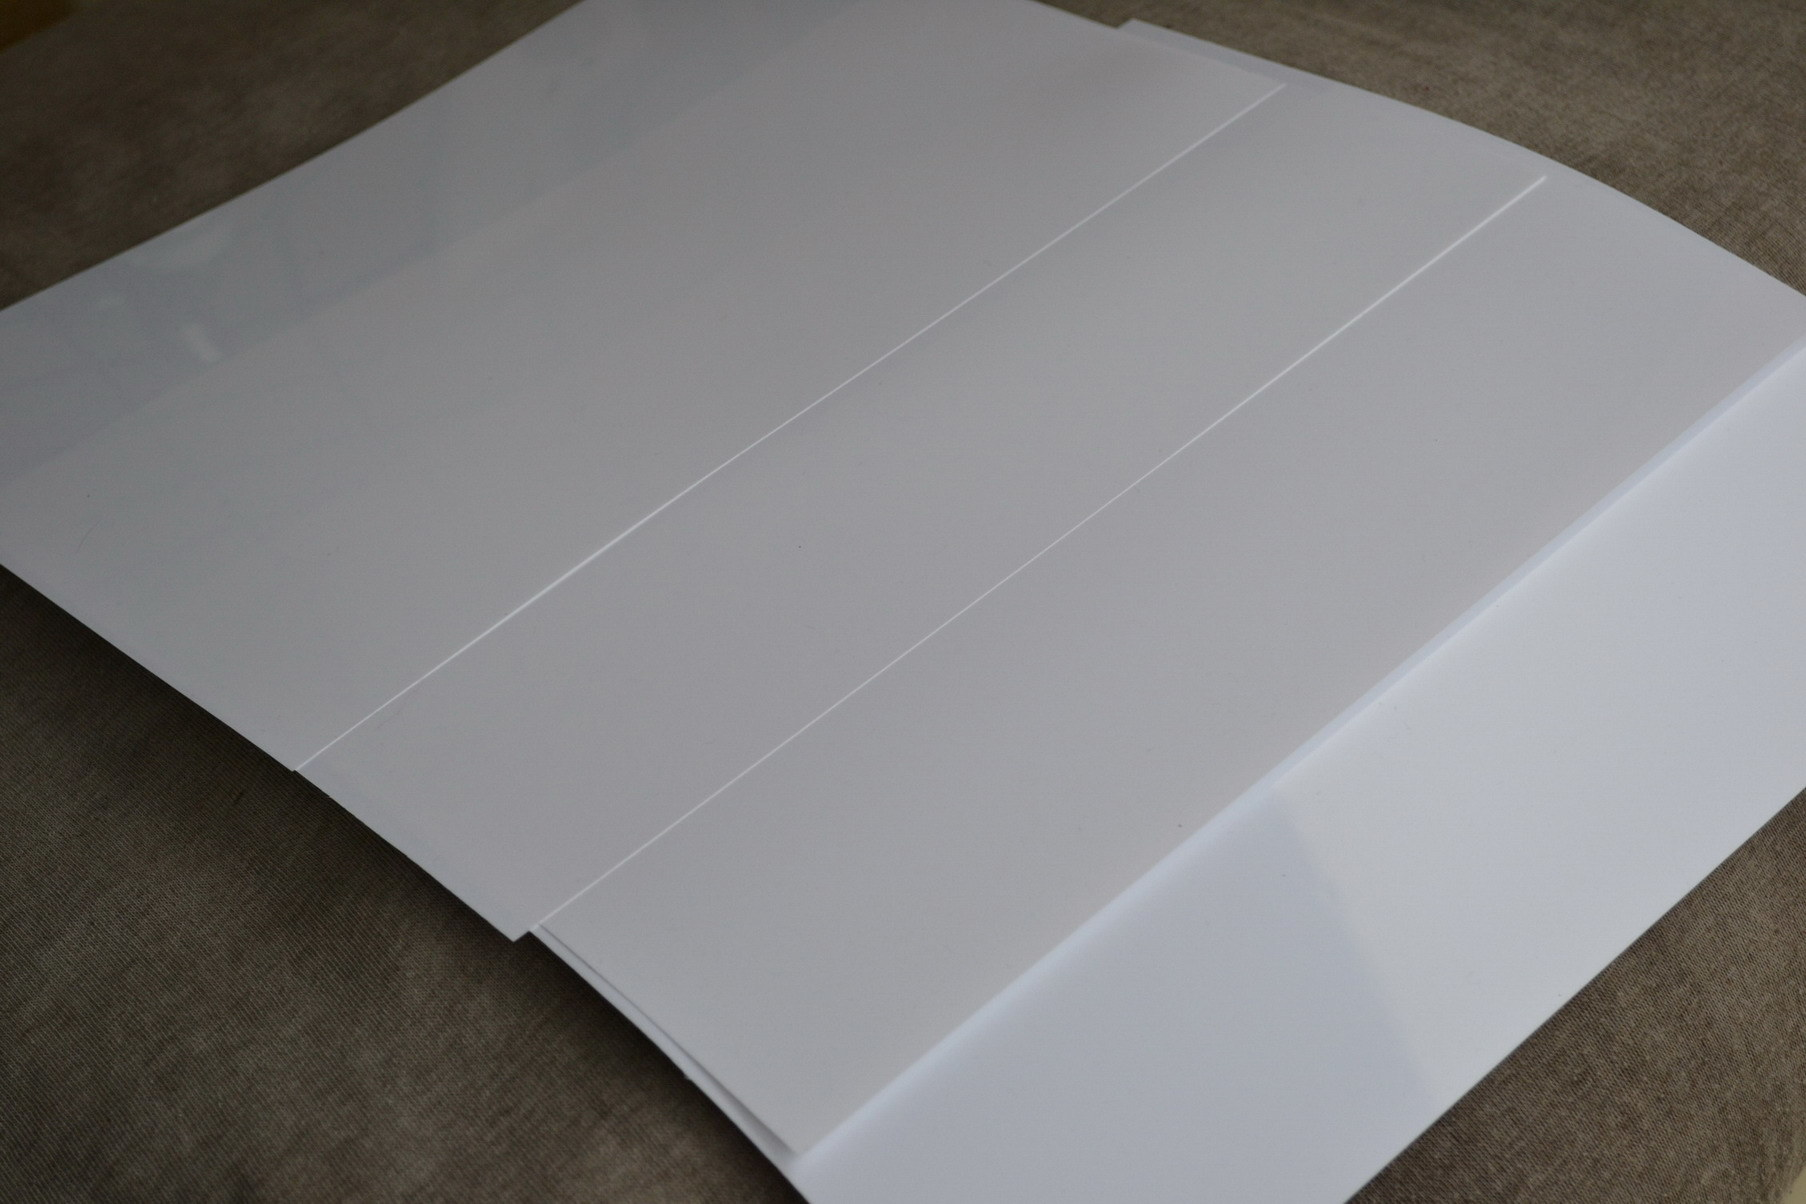 White Pet Films /White Polyester Film for Inkjet, and Laser Printer